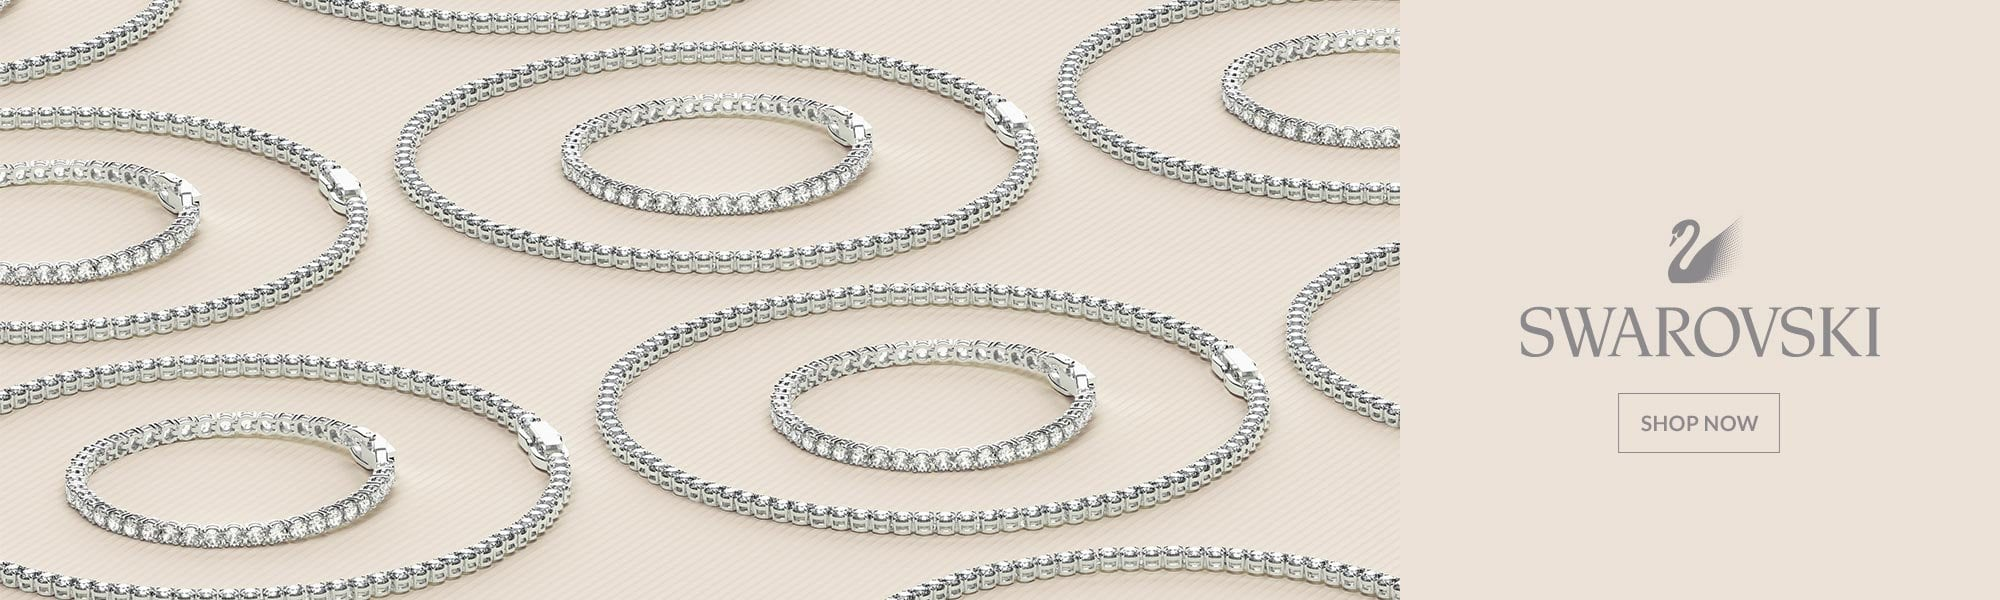 Swarovski Jewellery - Explore the Collection